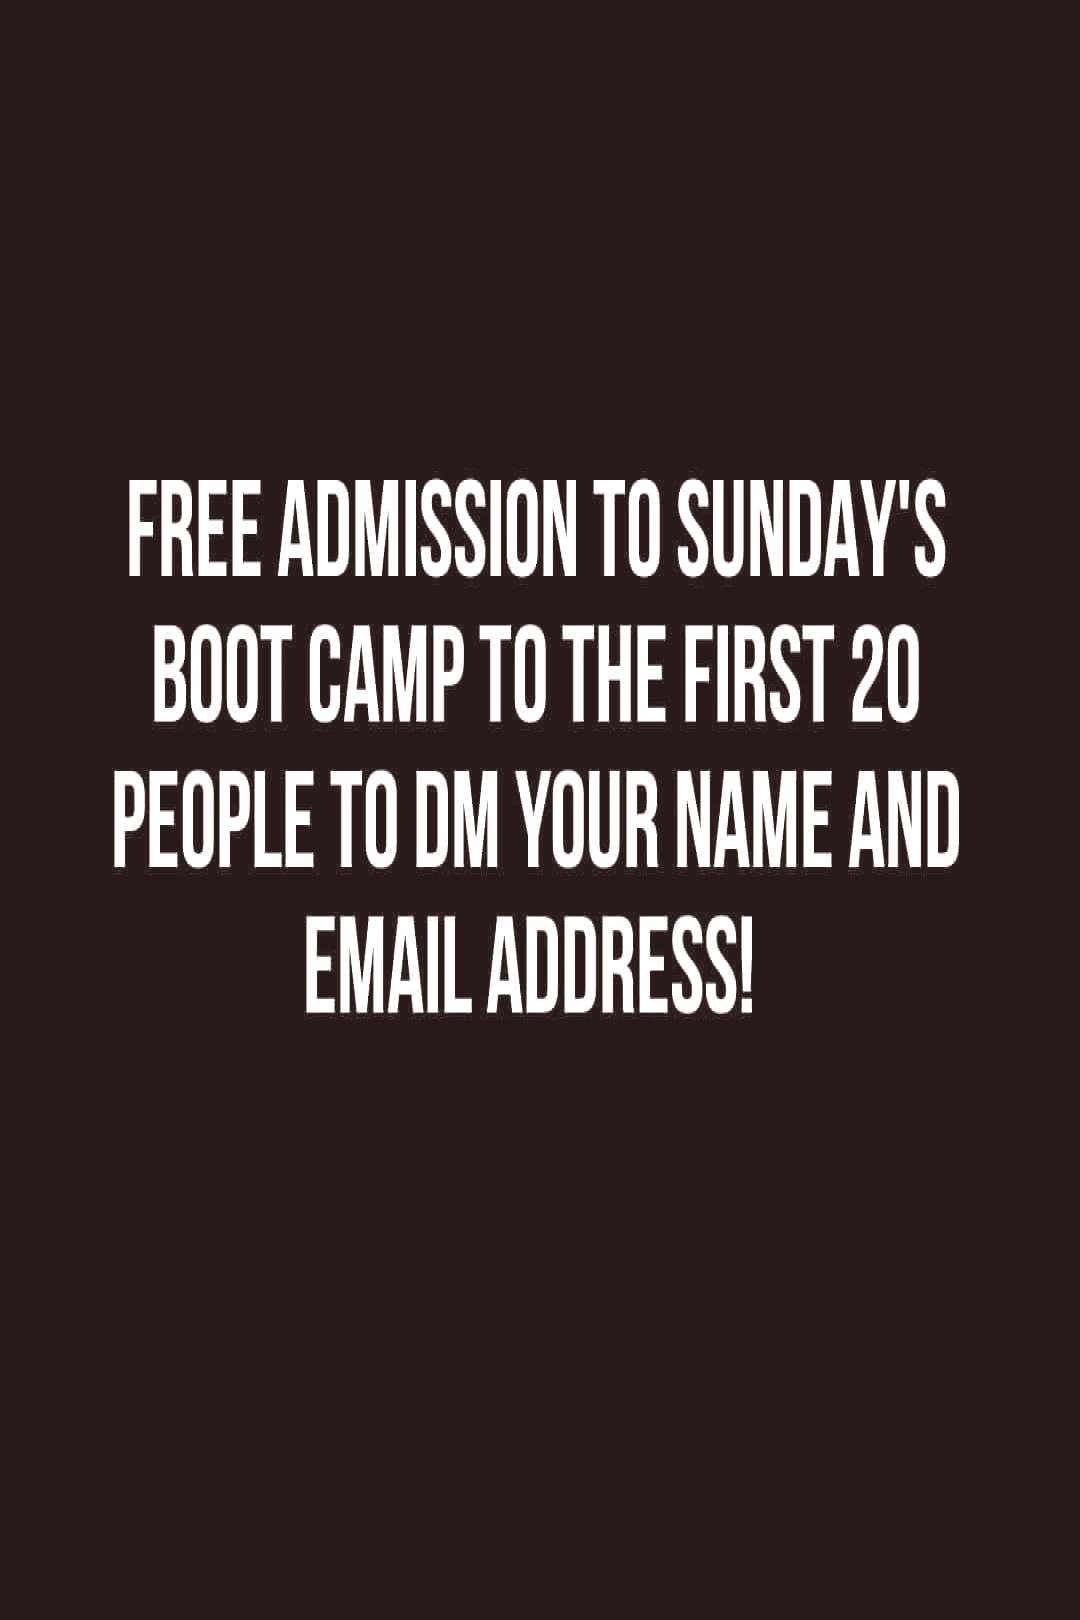 Michael Fitness on May 31 2020 text that says FREE ADMISSION TO S